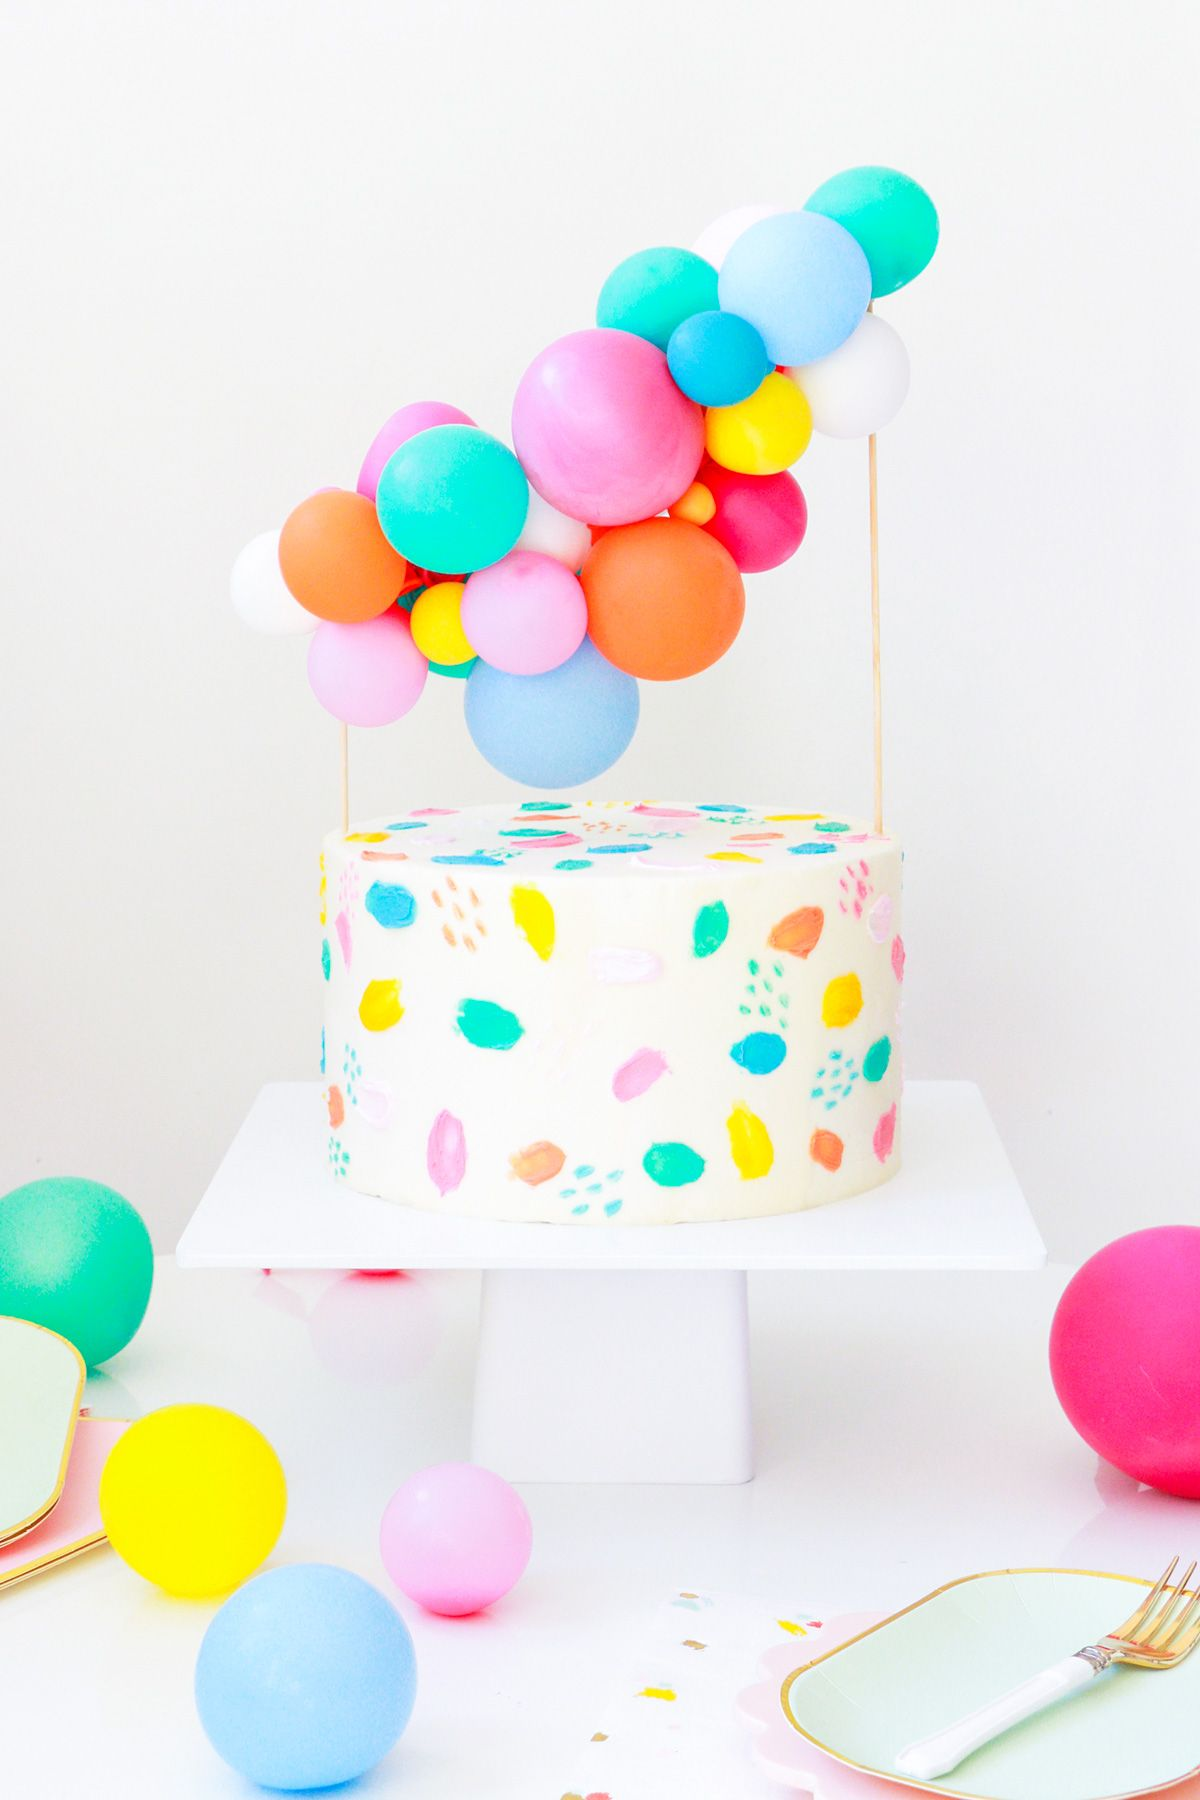 DIY Balloon Cake Topper By Top Houston Lifestyle Blogger Ashley Rose Of Sugar Cloth